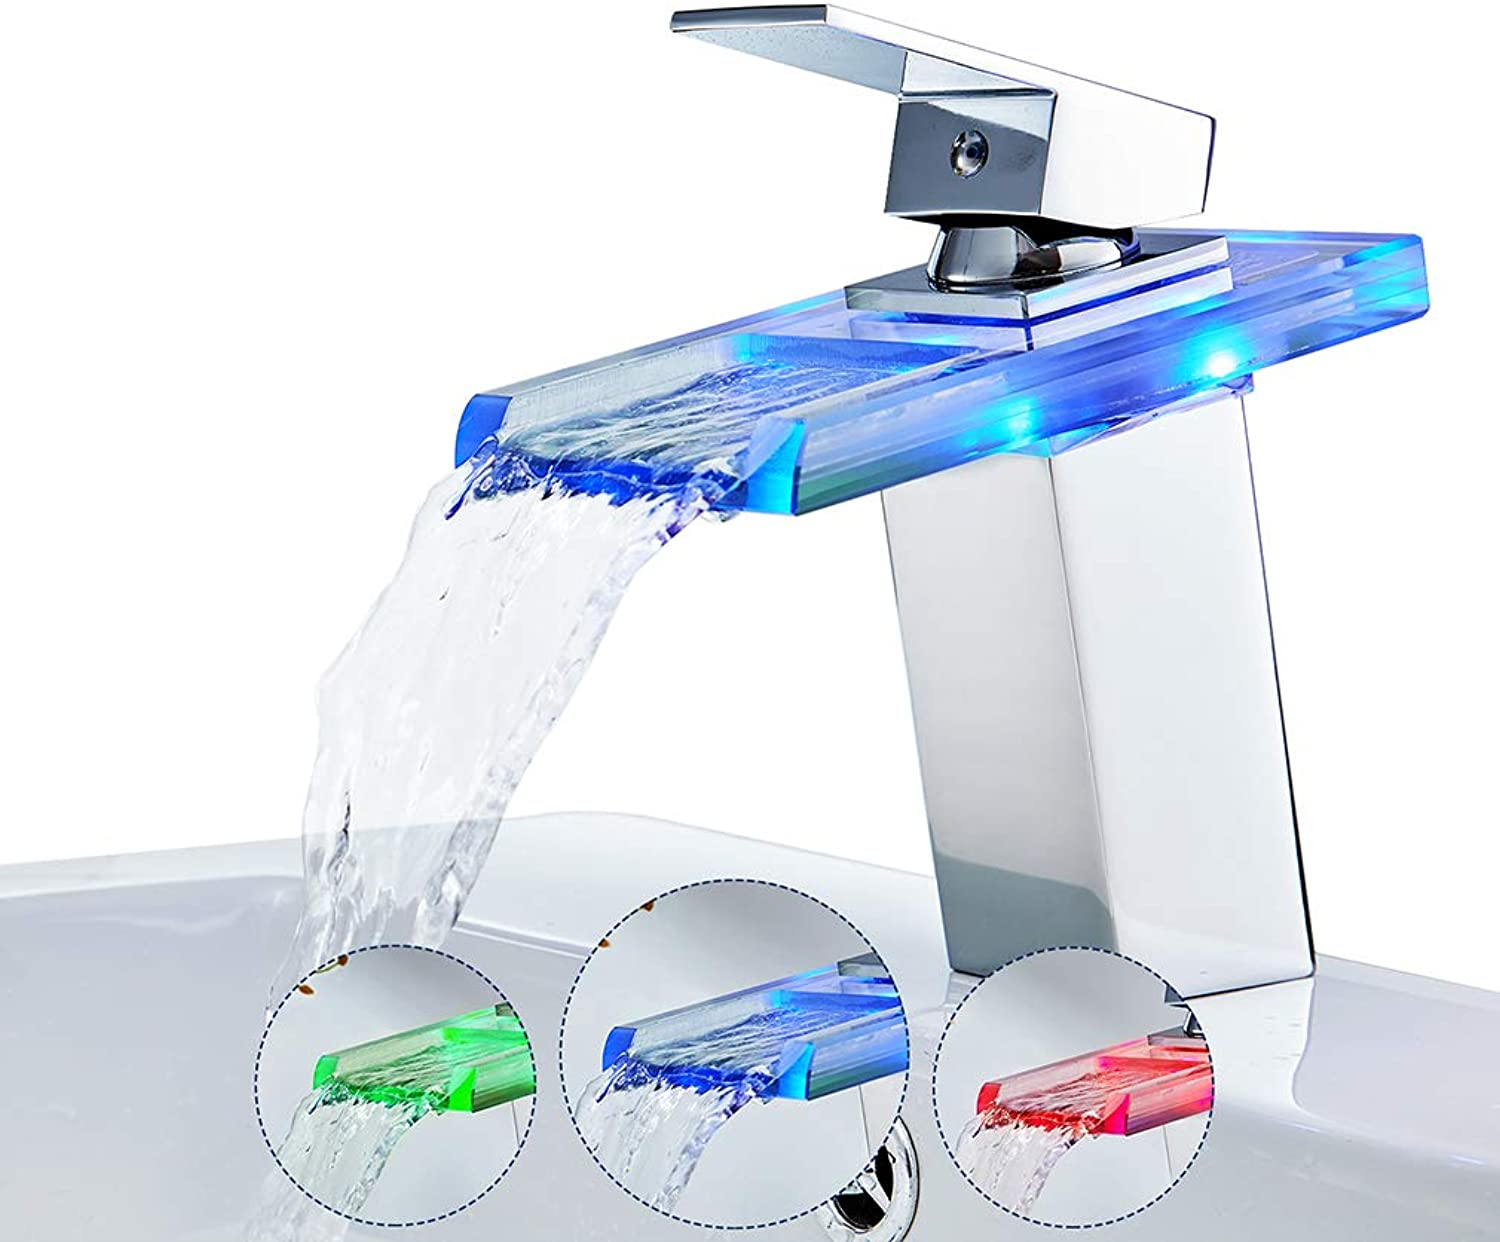 Auralum 3 Colour LED Glass Waterfall Mixer Tap,Bathroom Basin Faucet with Brass Body Monobloc Handle Hot and Cold Water Mixer, Polished Chrome.